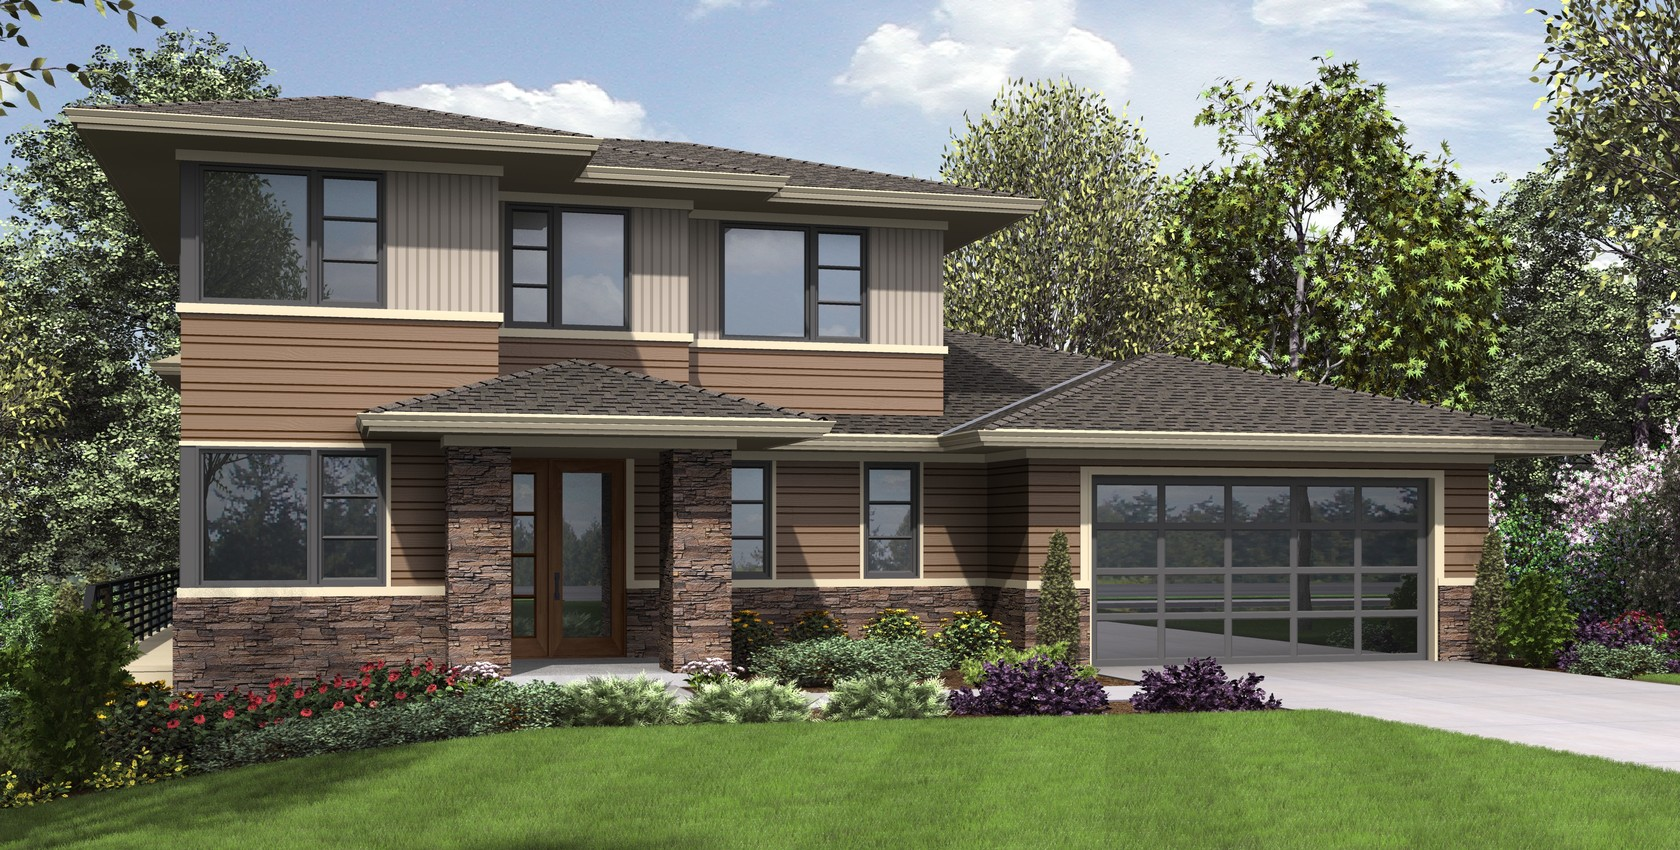 Image for Springlake-Popular Craftsman with Apartment Below-8664